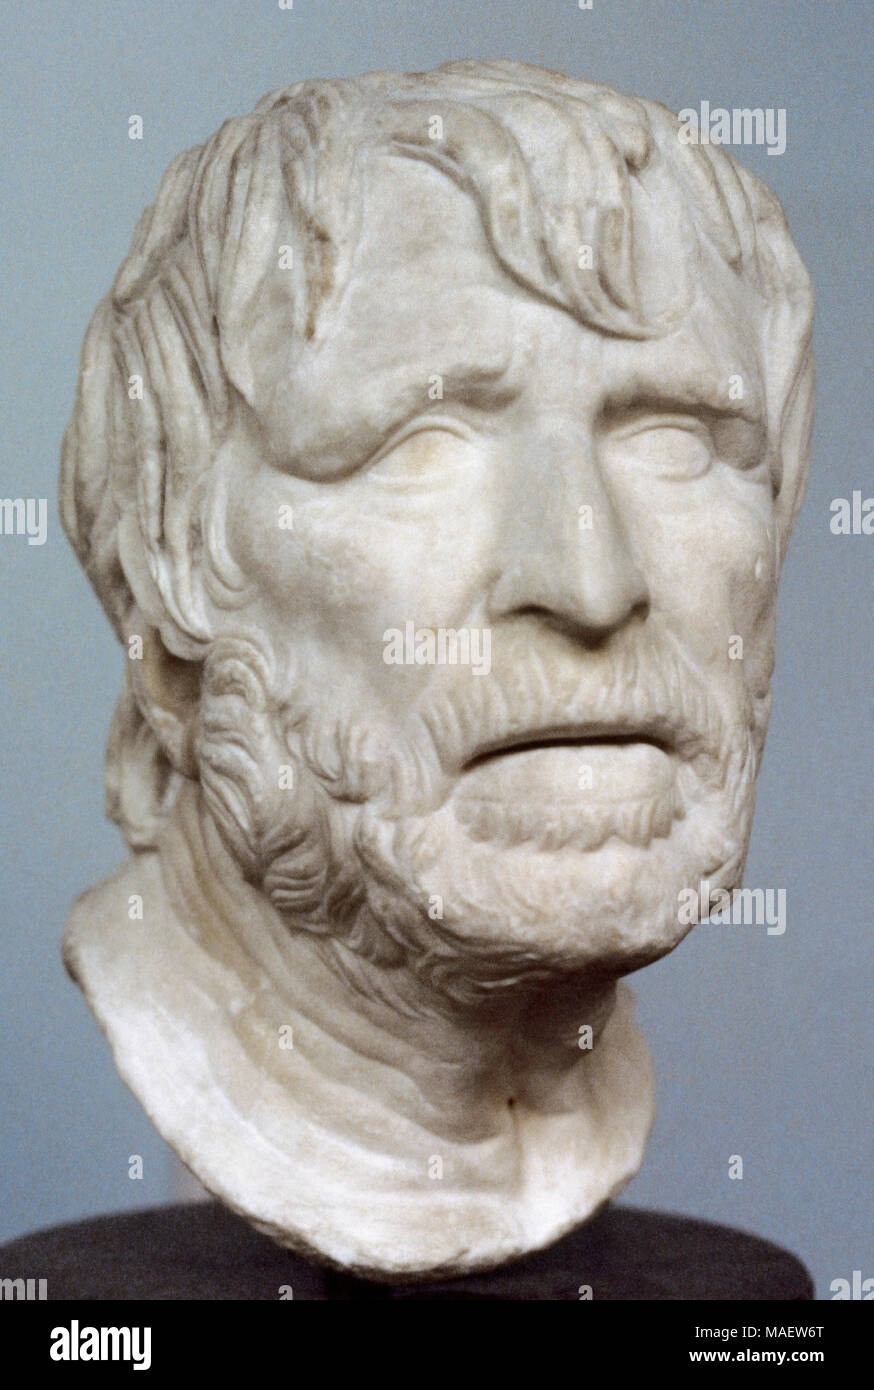 Pseudo-Seneca. Bust identified with the Roman philosopher Seneca during lot of time. It may represent the Greek poet Hesiod (ca. 700 BC). Roman copy of a lost Hellenistic sculpture. Roman bust. British Museum. London, England. - Stock Image